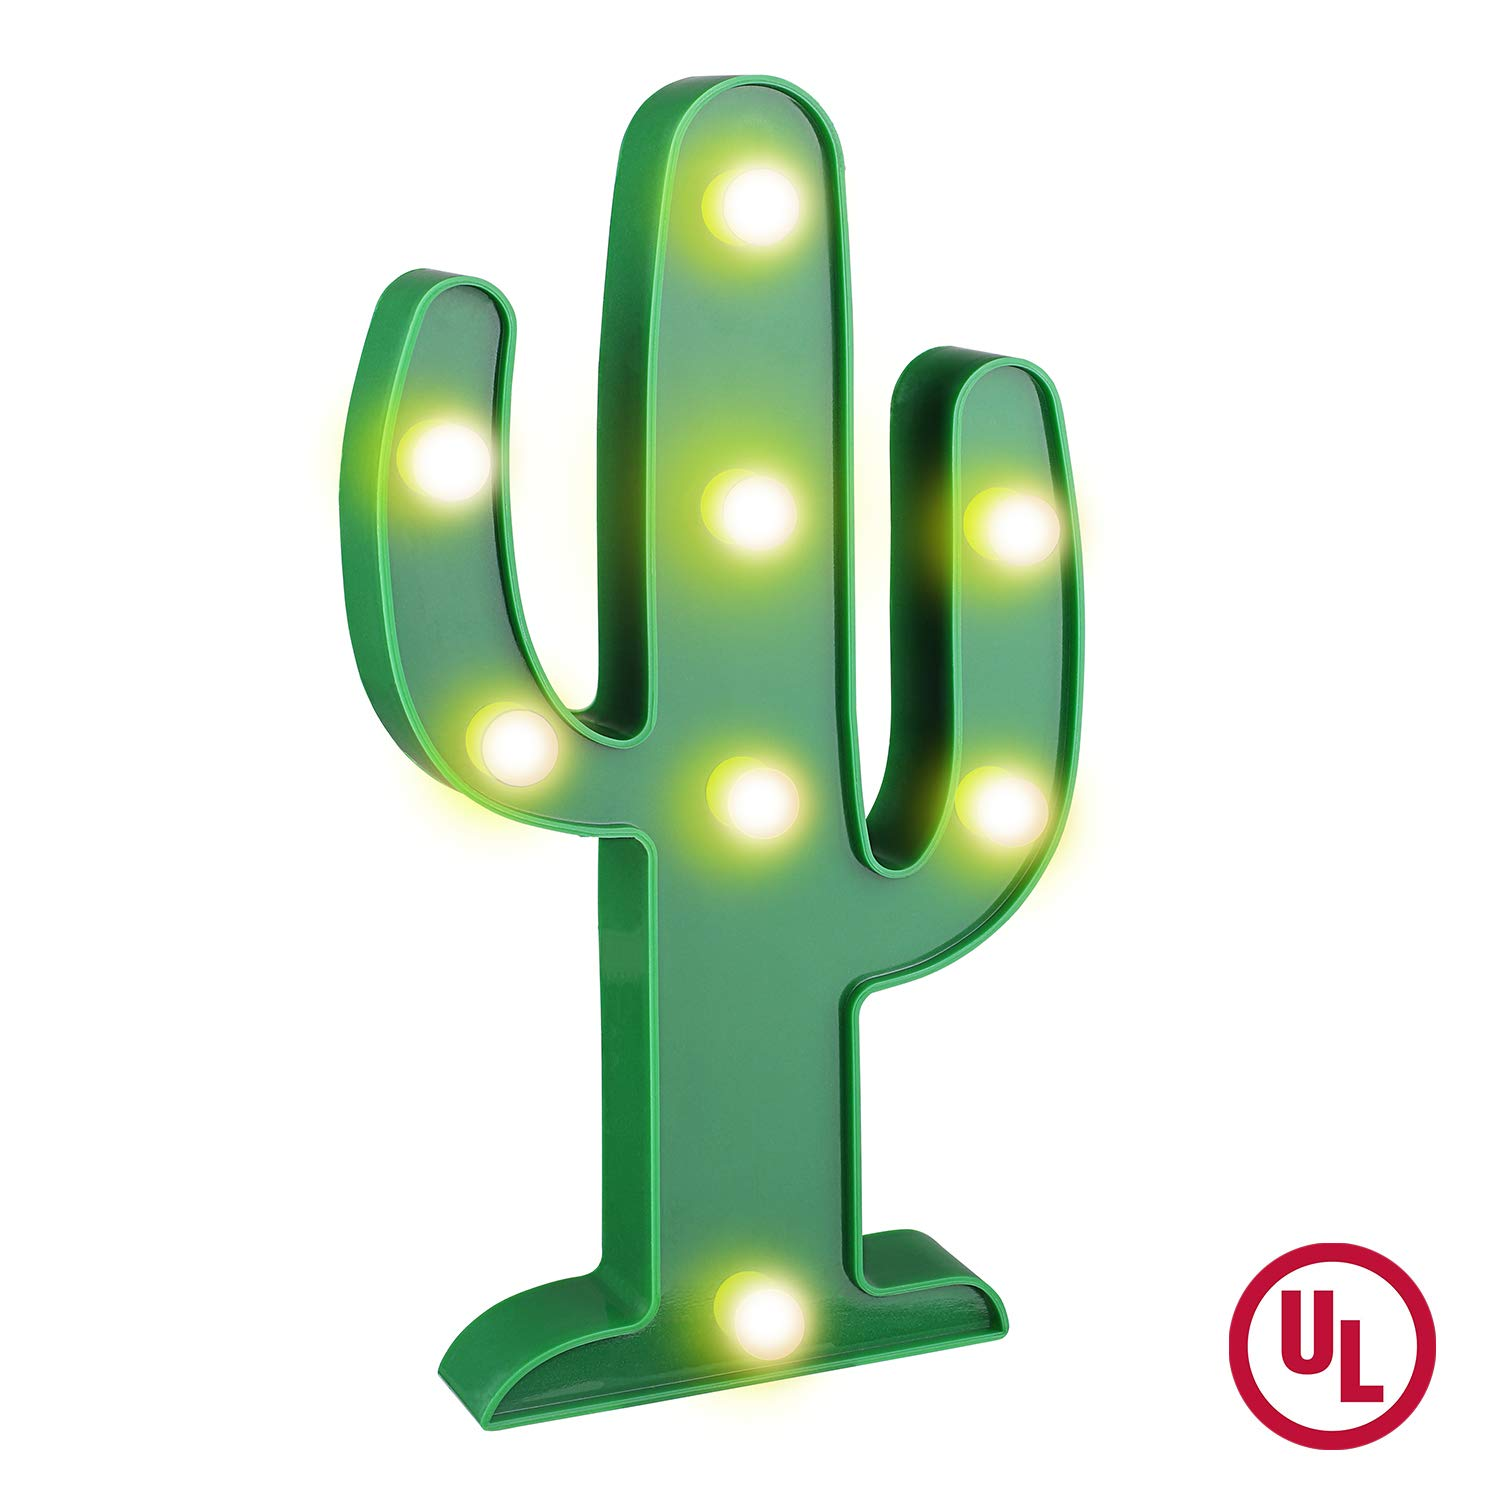 YiaMia LED Cactus Light Cute Night Table Lamp Light for Kids' Room Bedroom Gift Party Home Decorations Green